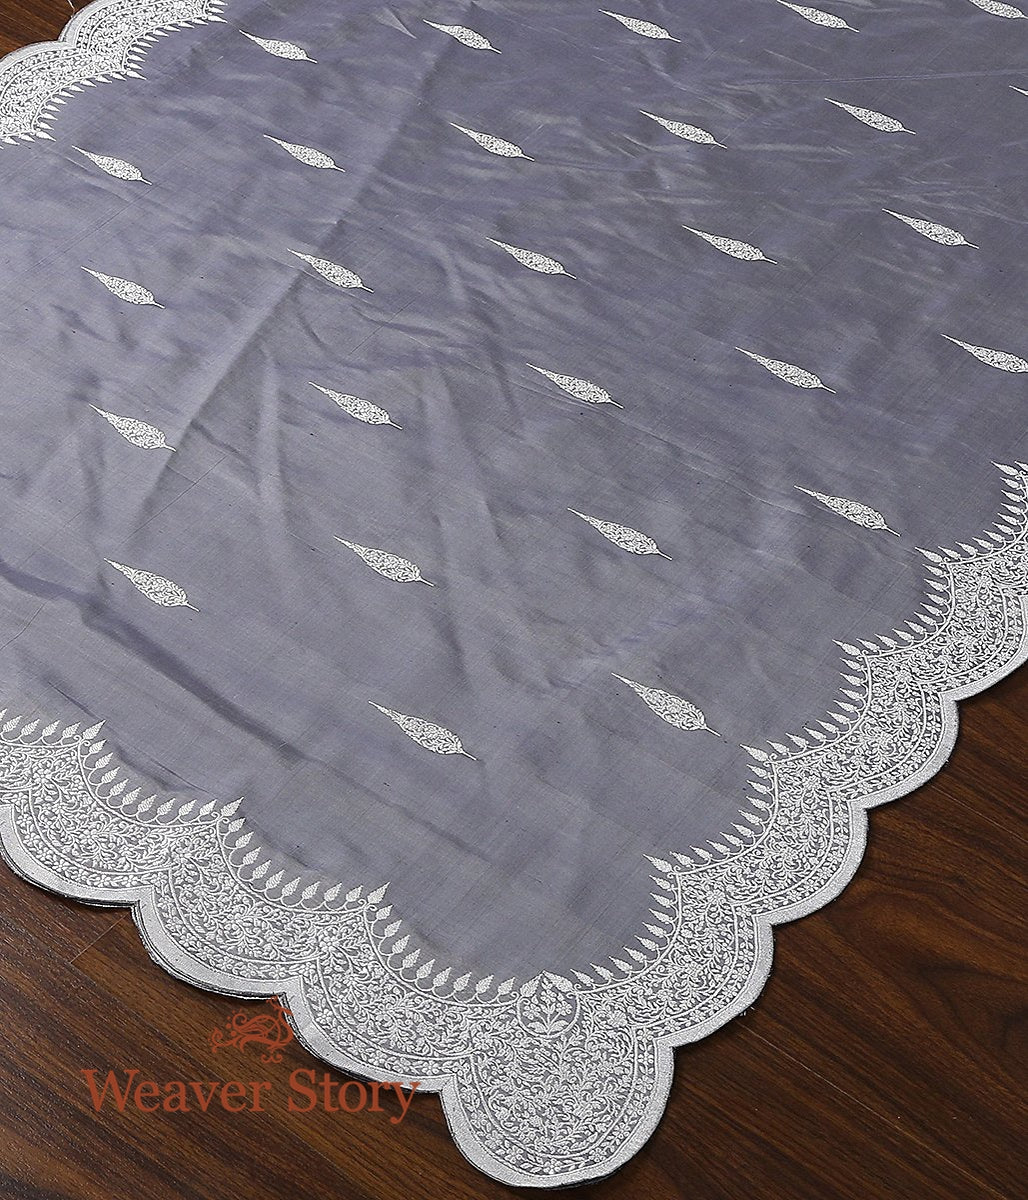 Handwoven Grey Banarasi Dupatta with Scalloped Borders